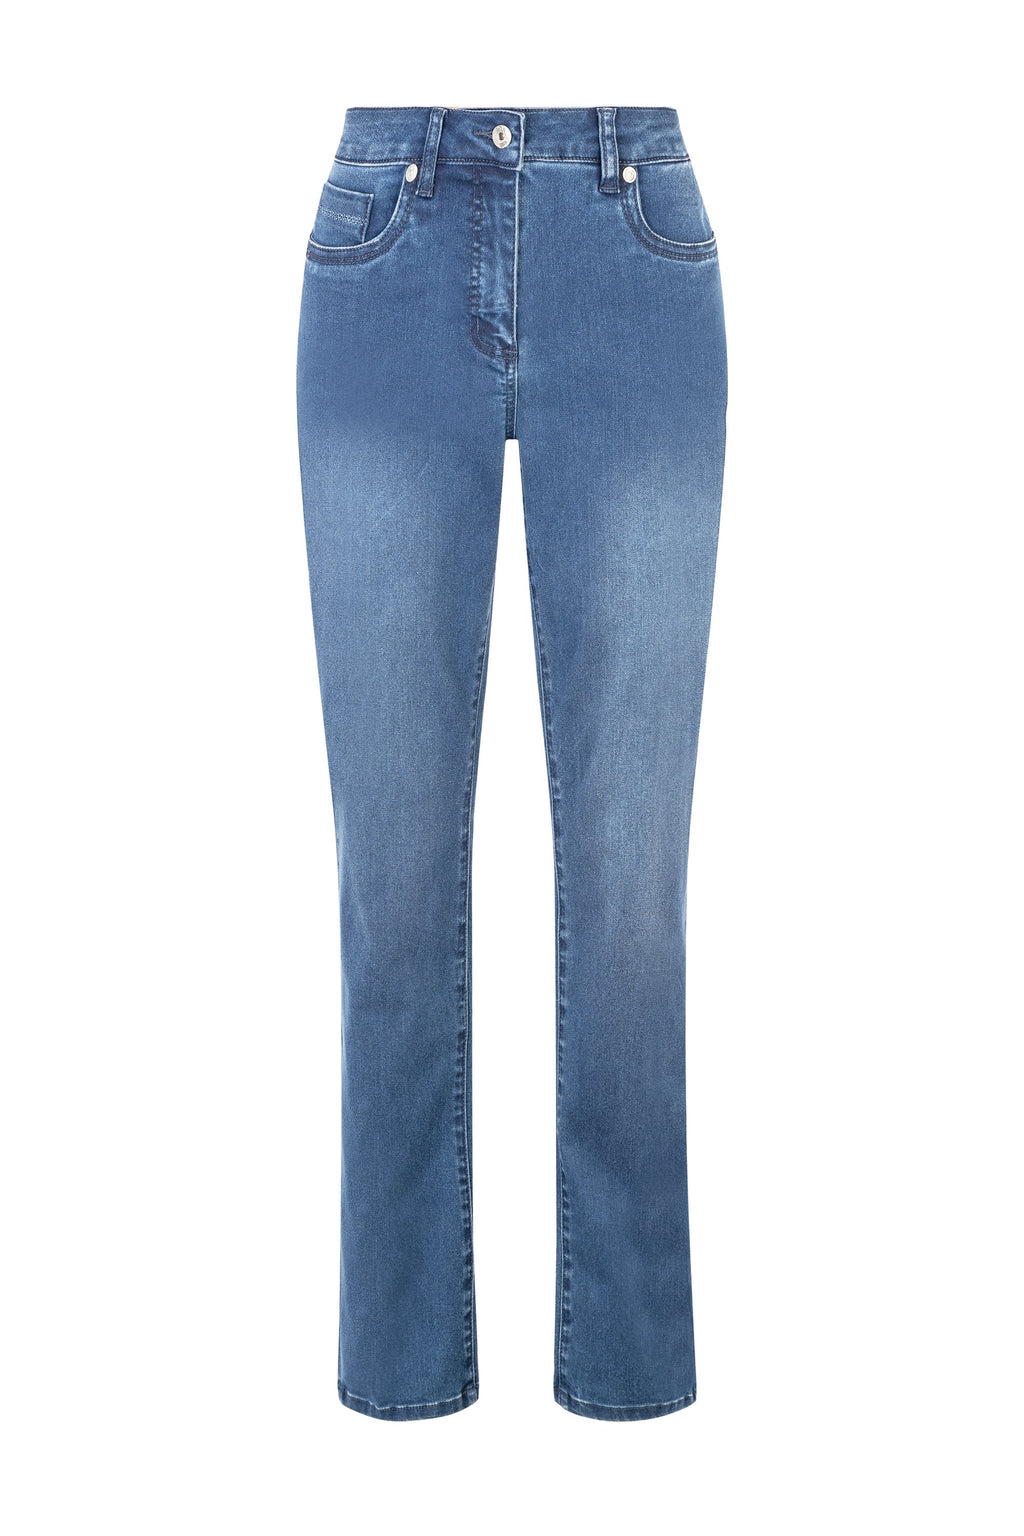 Damen Jeans Rita Powerstretch